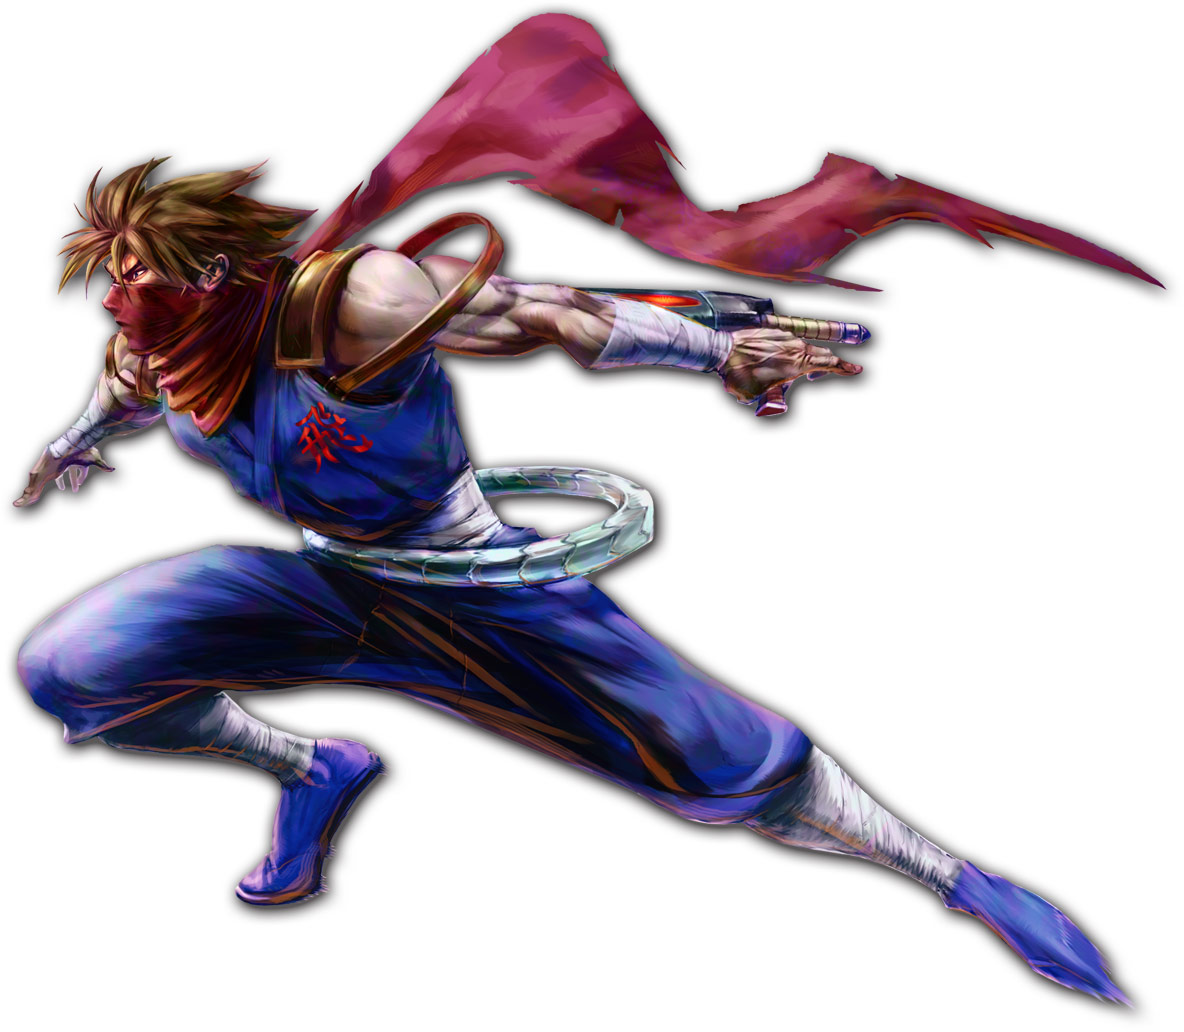 Strider artwork: Marvel vs. Capcom 2